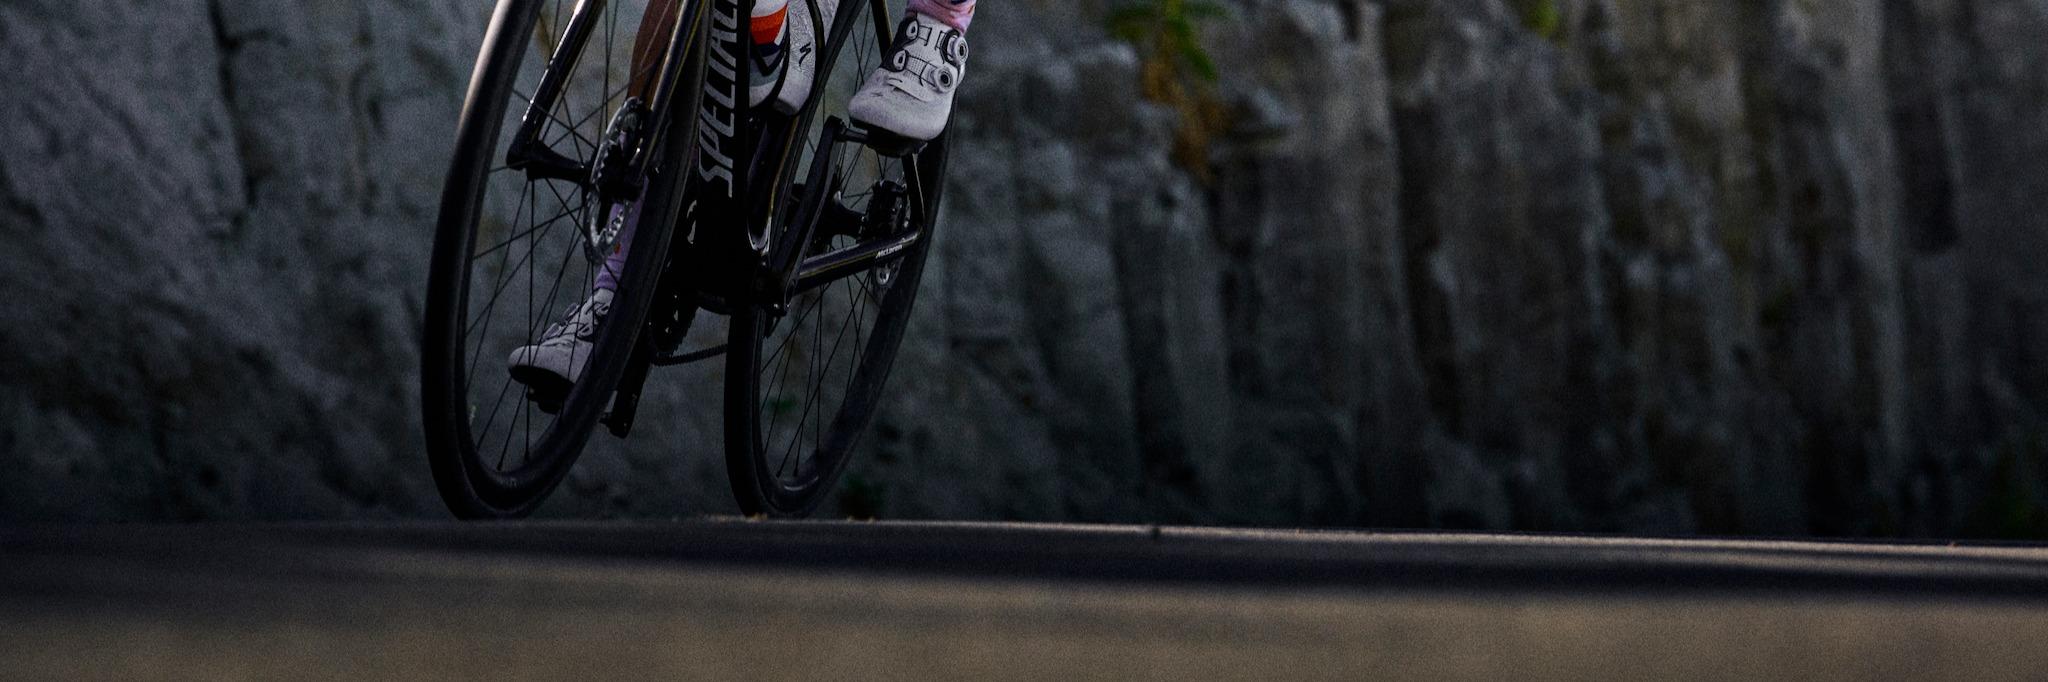 A person riding a Specialized Tarmac up a mountain with a rocky background.